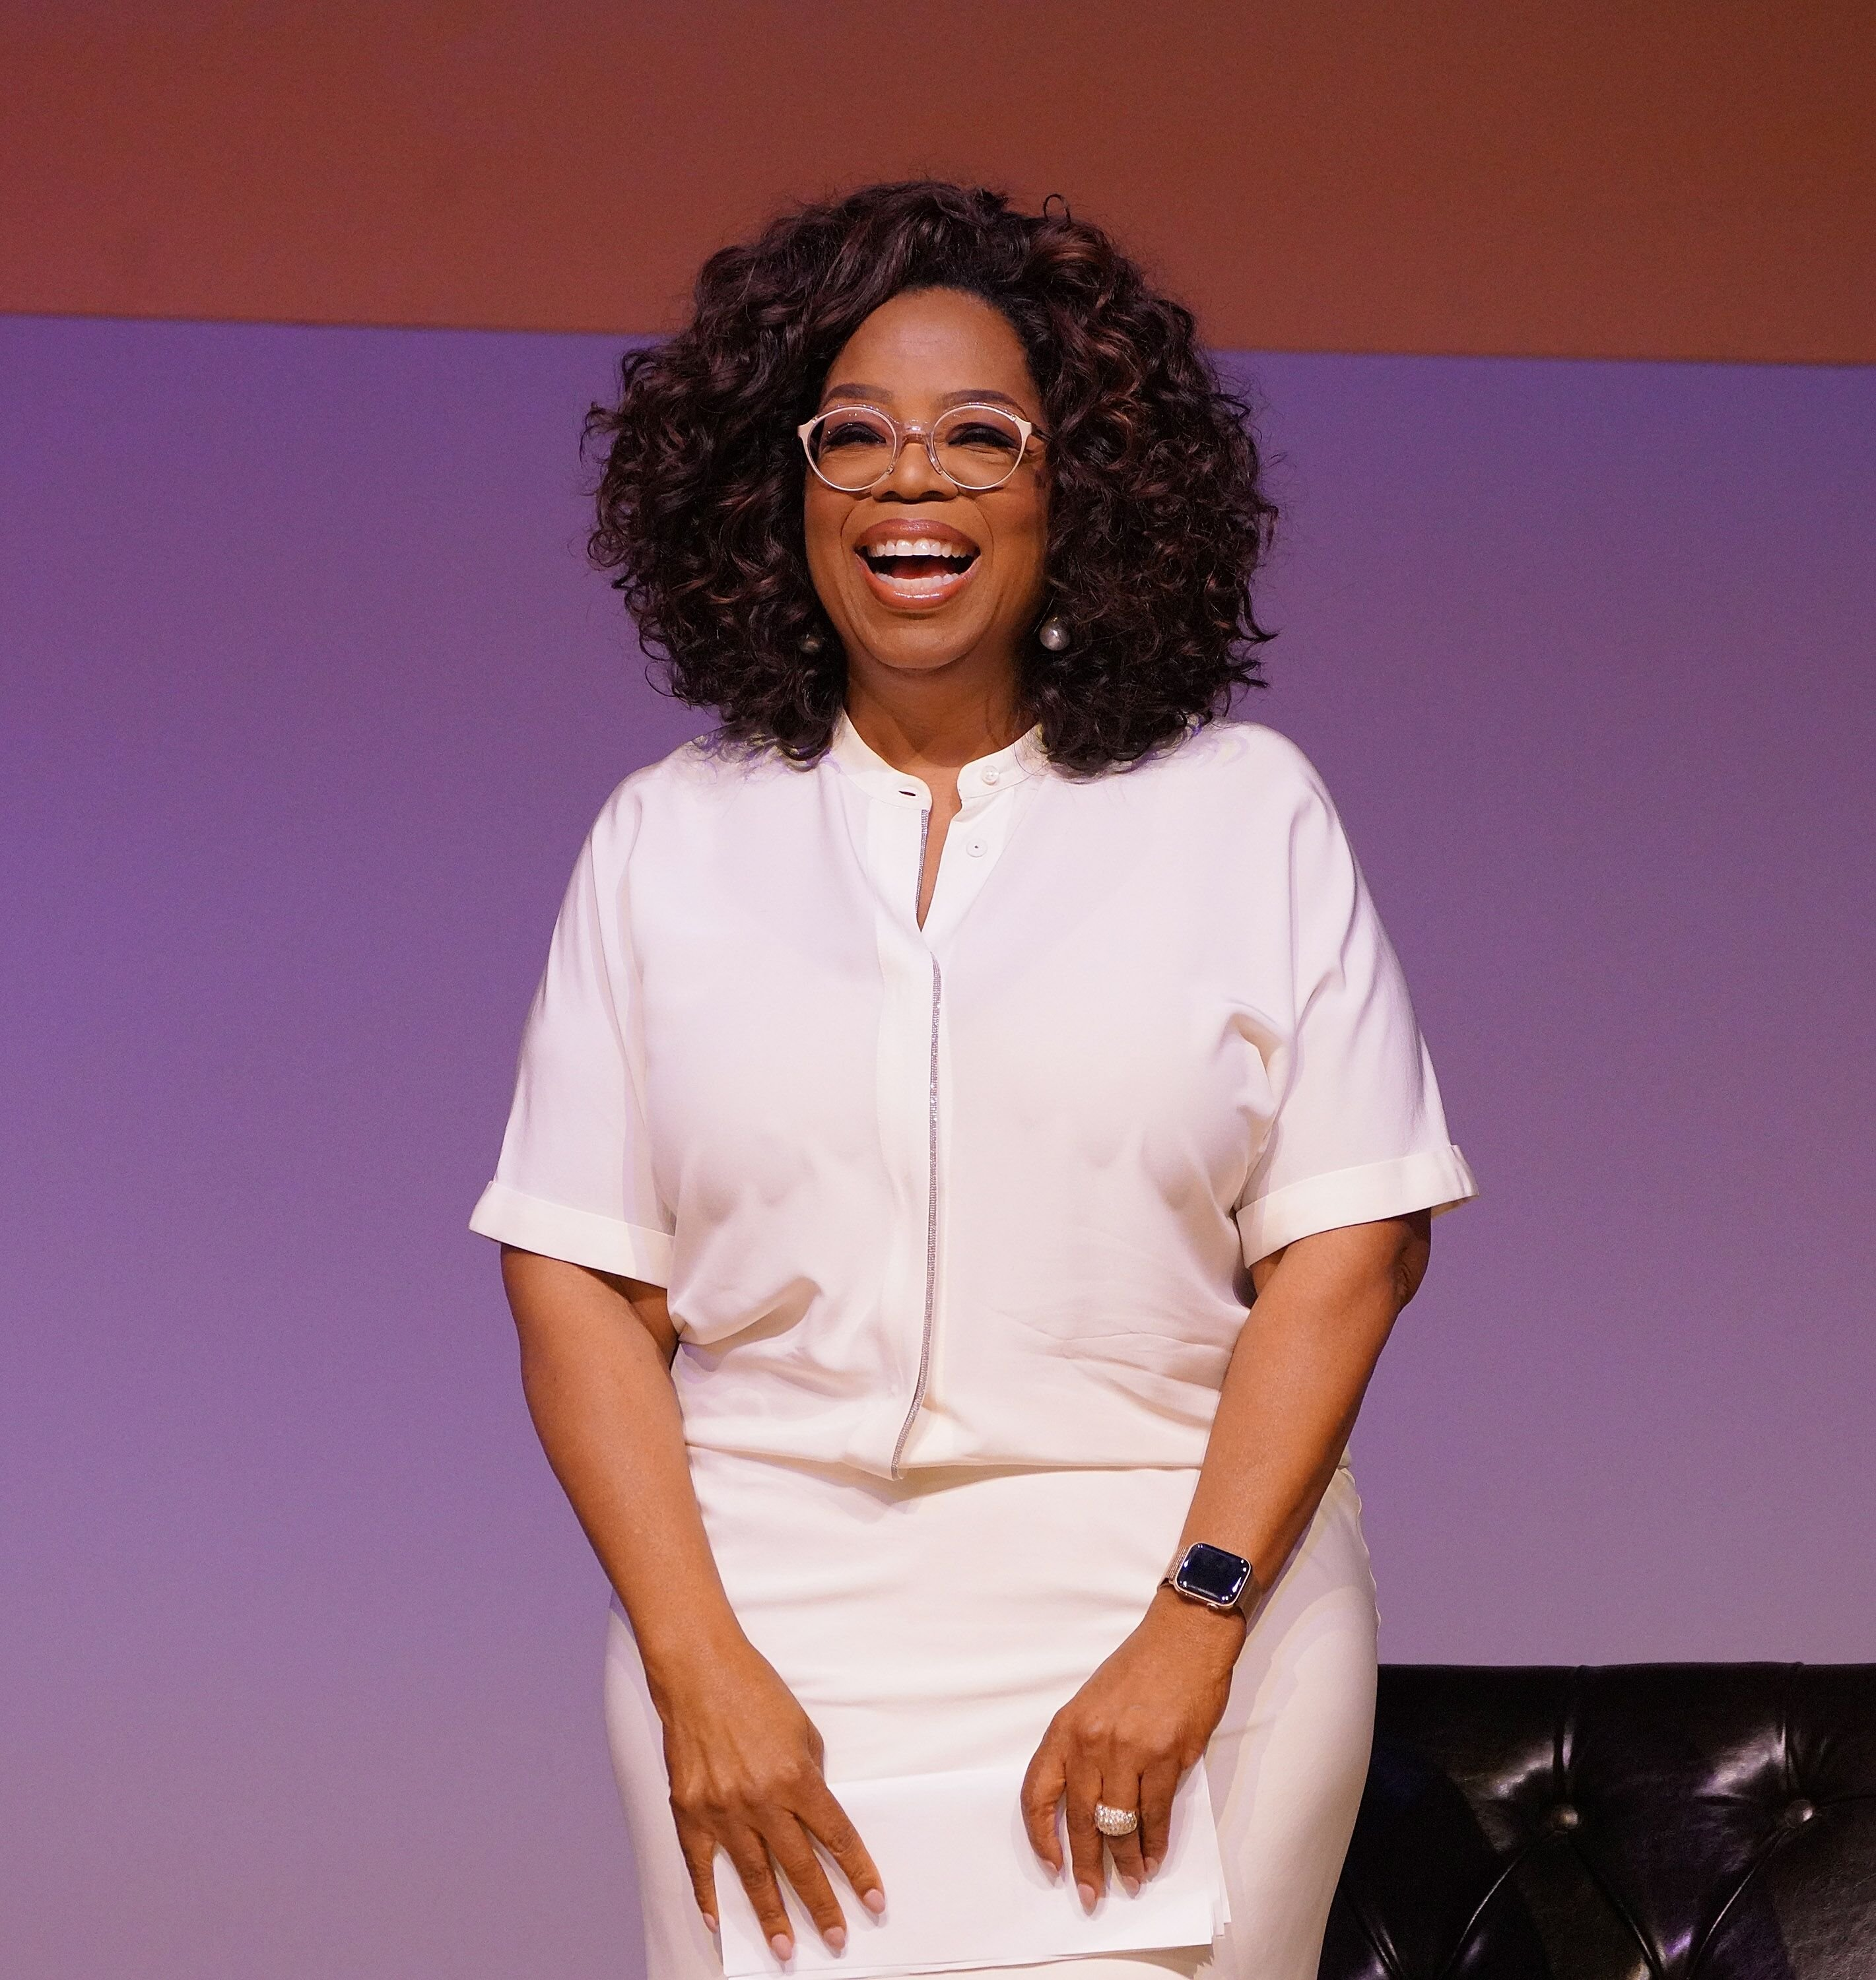 Media personality and activist Oprah Winfrey attends the Dignity of Women Conversation at The University of Johannesburg on November 29, 2018 | Photo: Getty Images